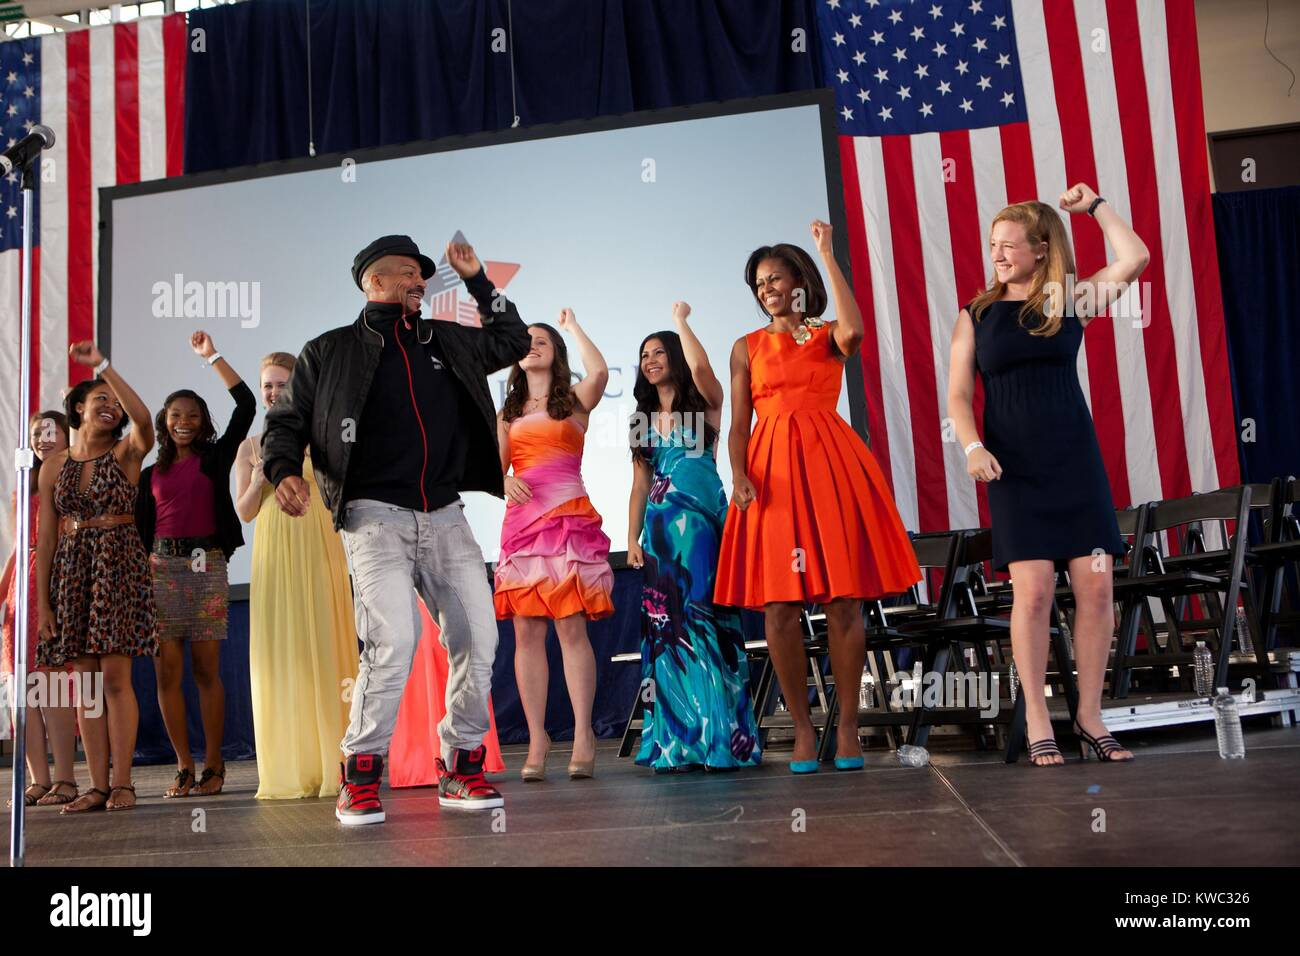 Choreographer Rosero McCoy leads a dance event at Jacksonville Naval Air Station. First Lady Michelle Obama and - Stock Image